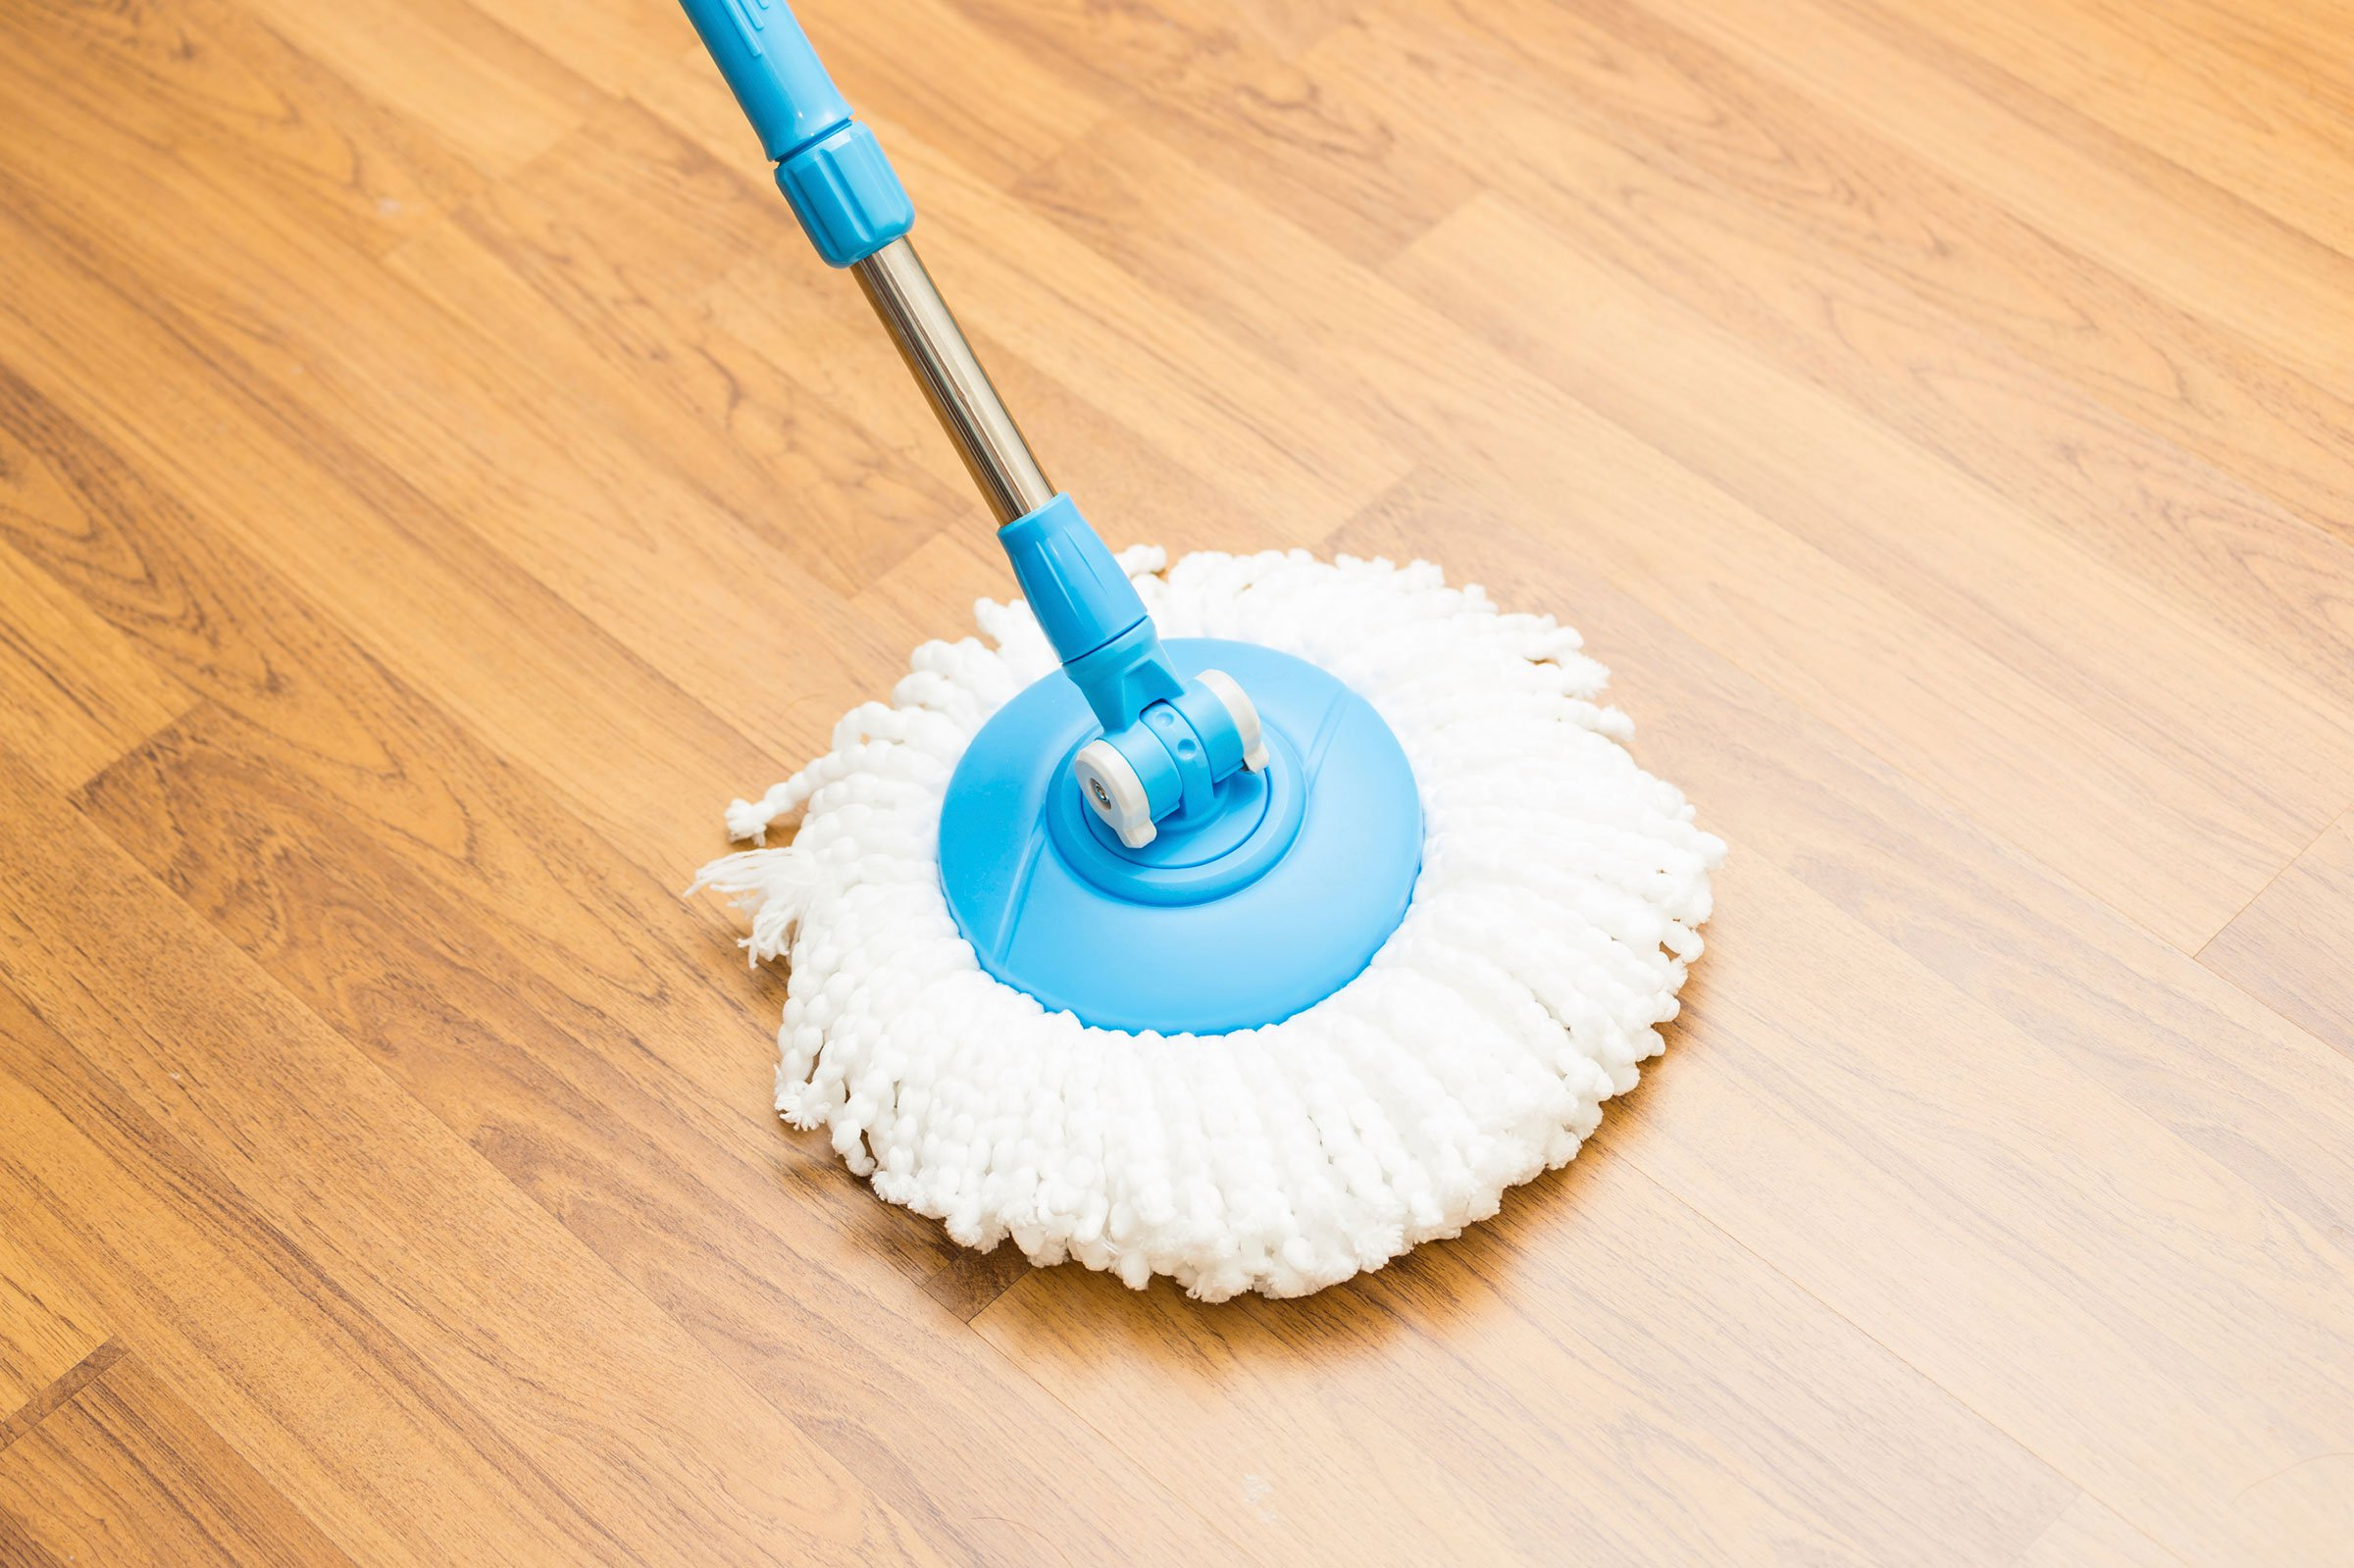 01-how-to-clean-vinyl-floors-mop